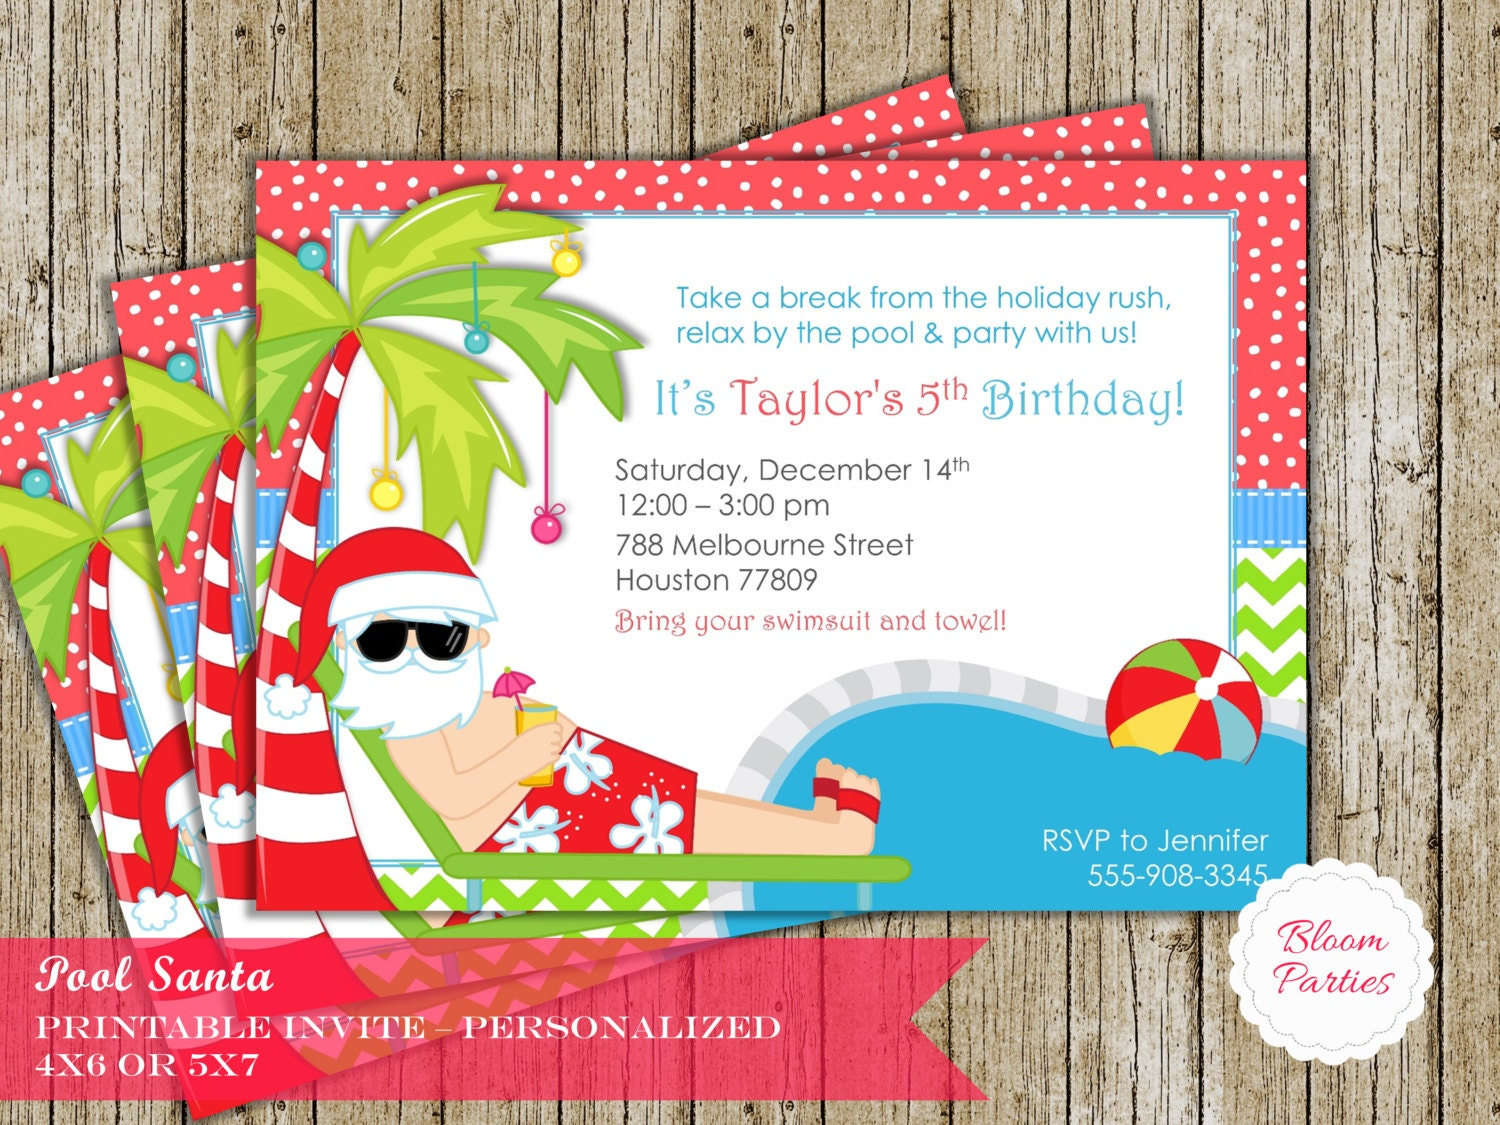 Christmas pool party invitation winter pool party swimming zoom monicamarmolfo Image collections